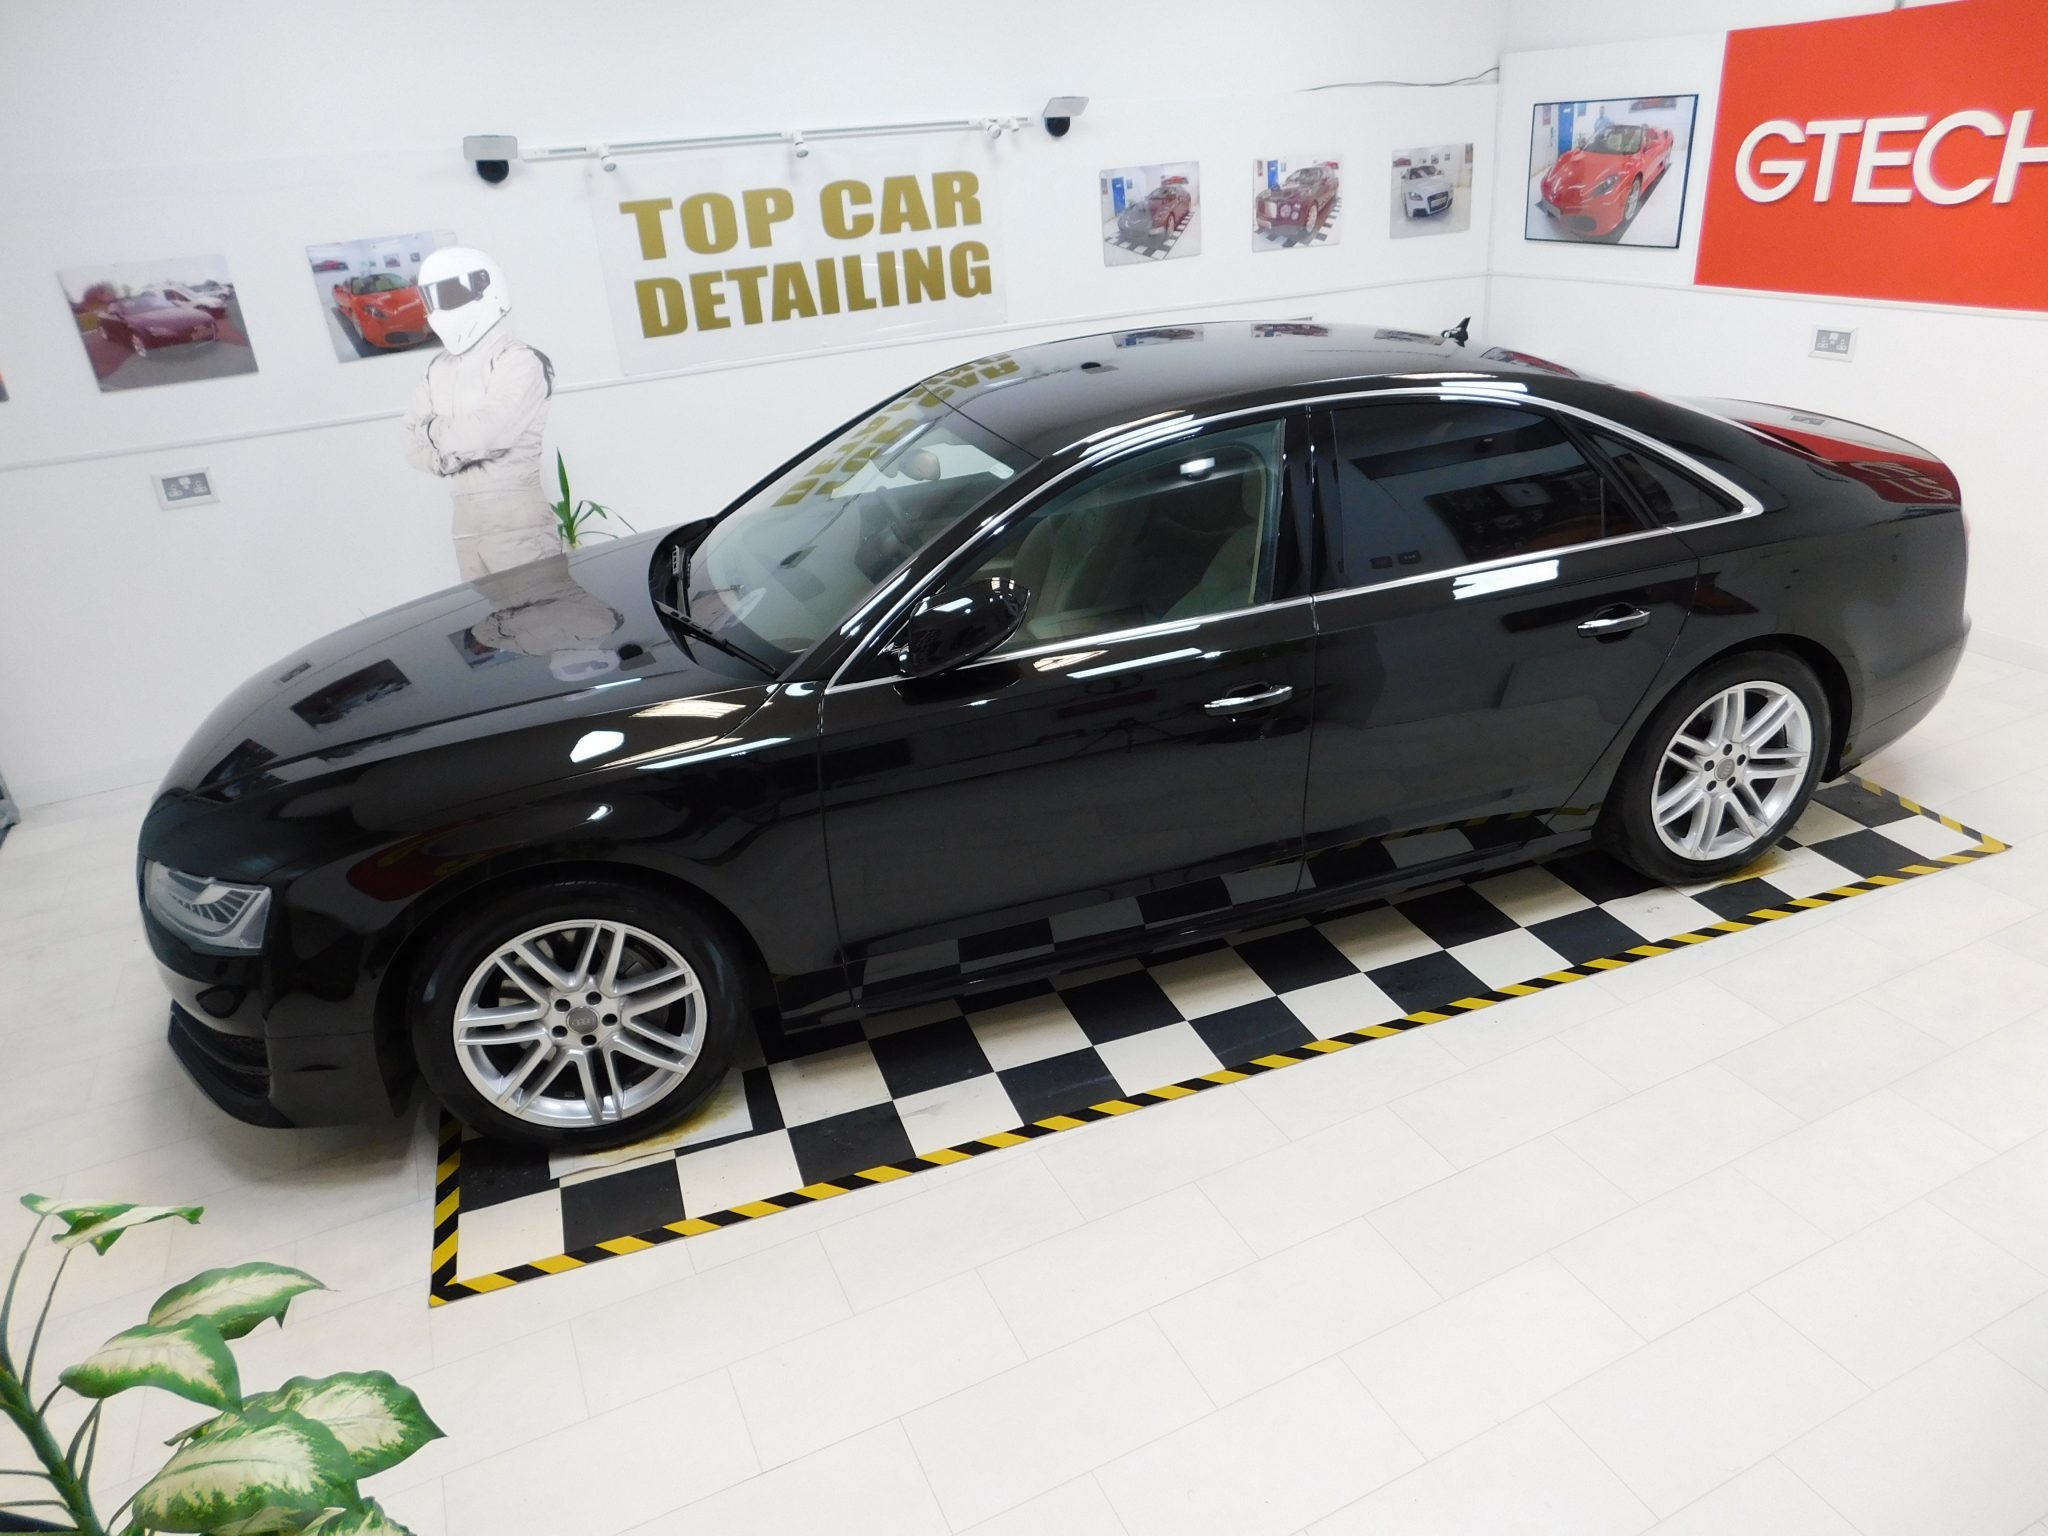 Audi A8 Top Car Detailing Professional Car Detailing